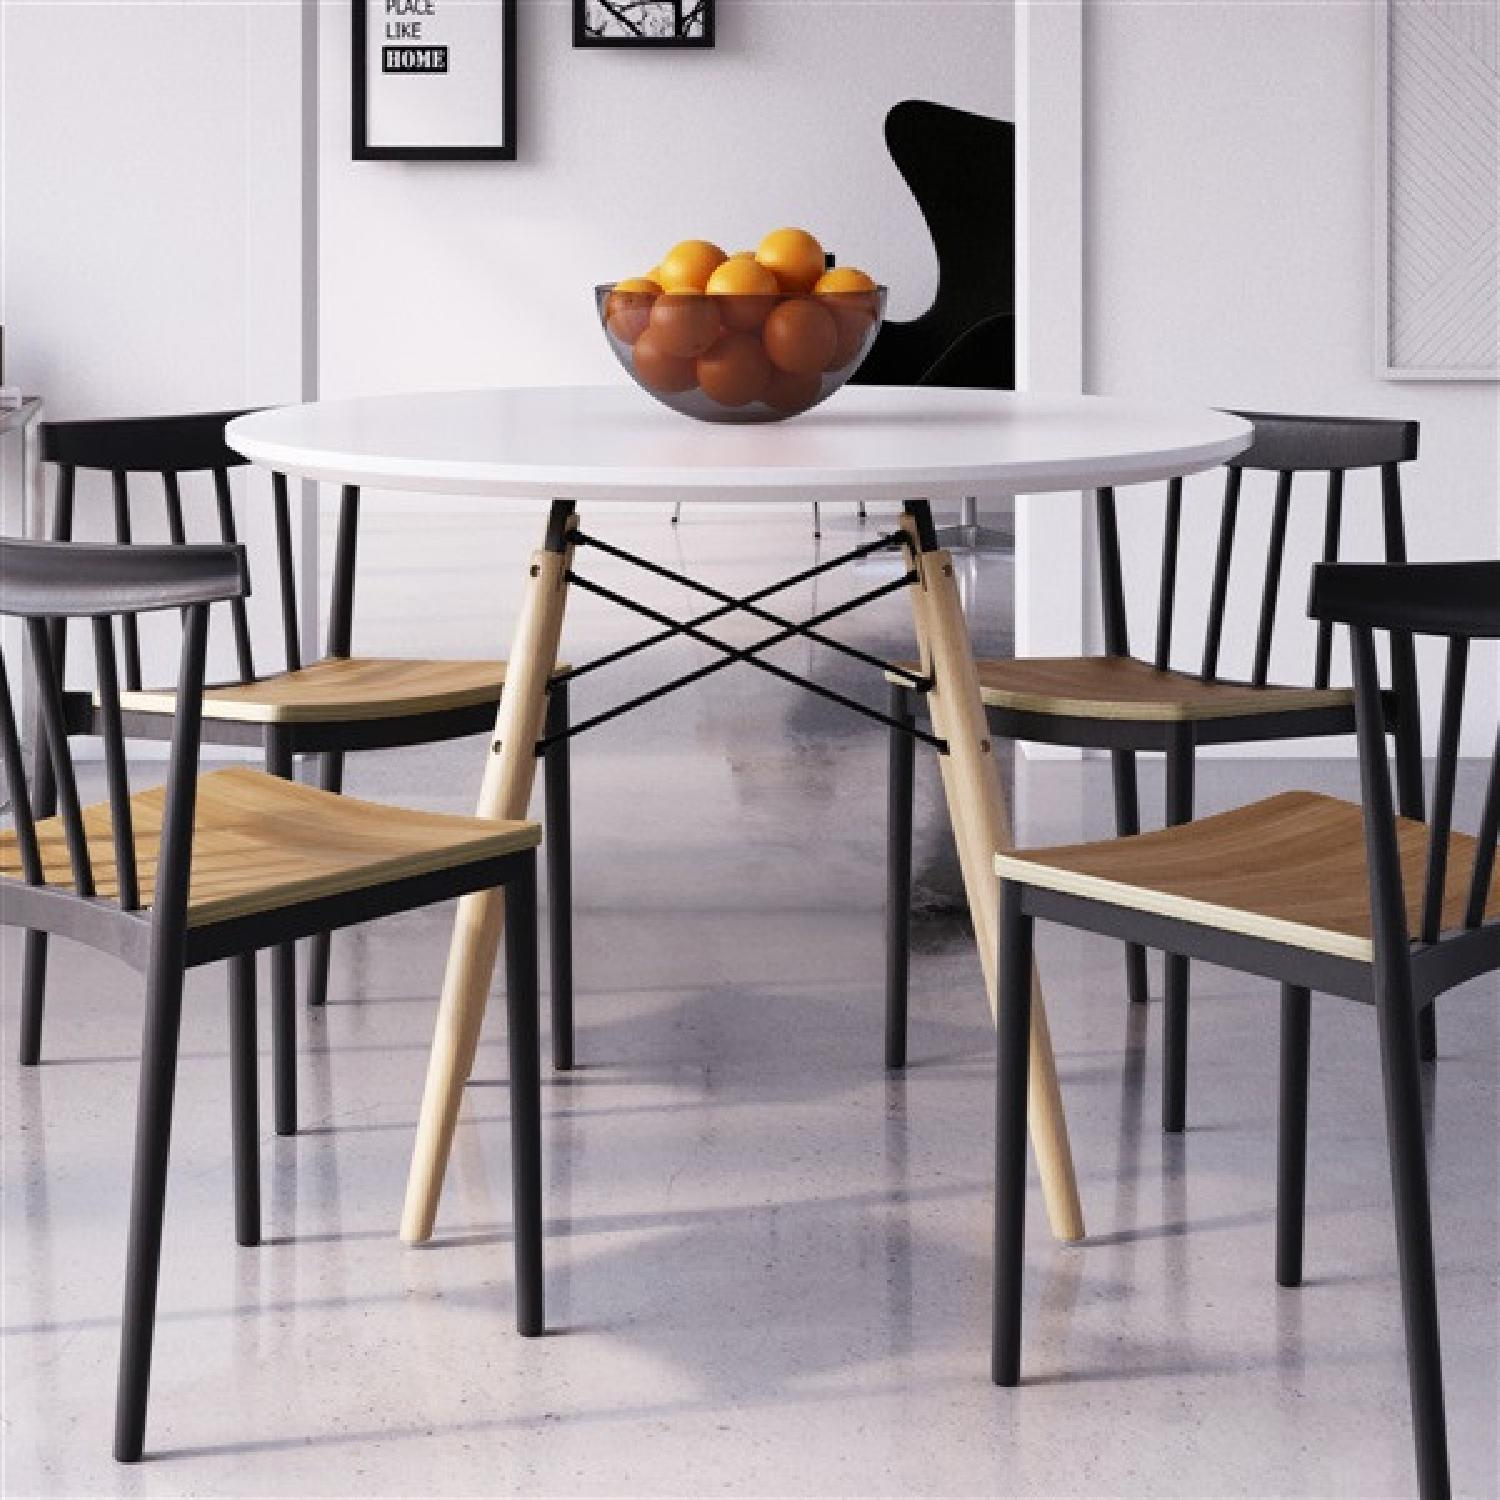 Eiffel Style Dining Table - image-3